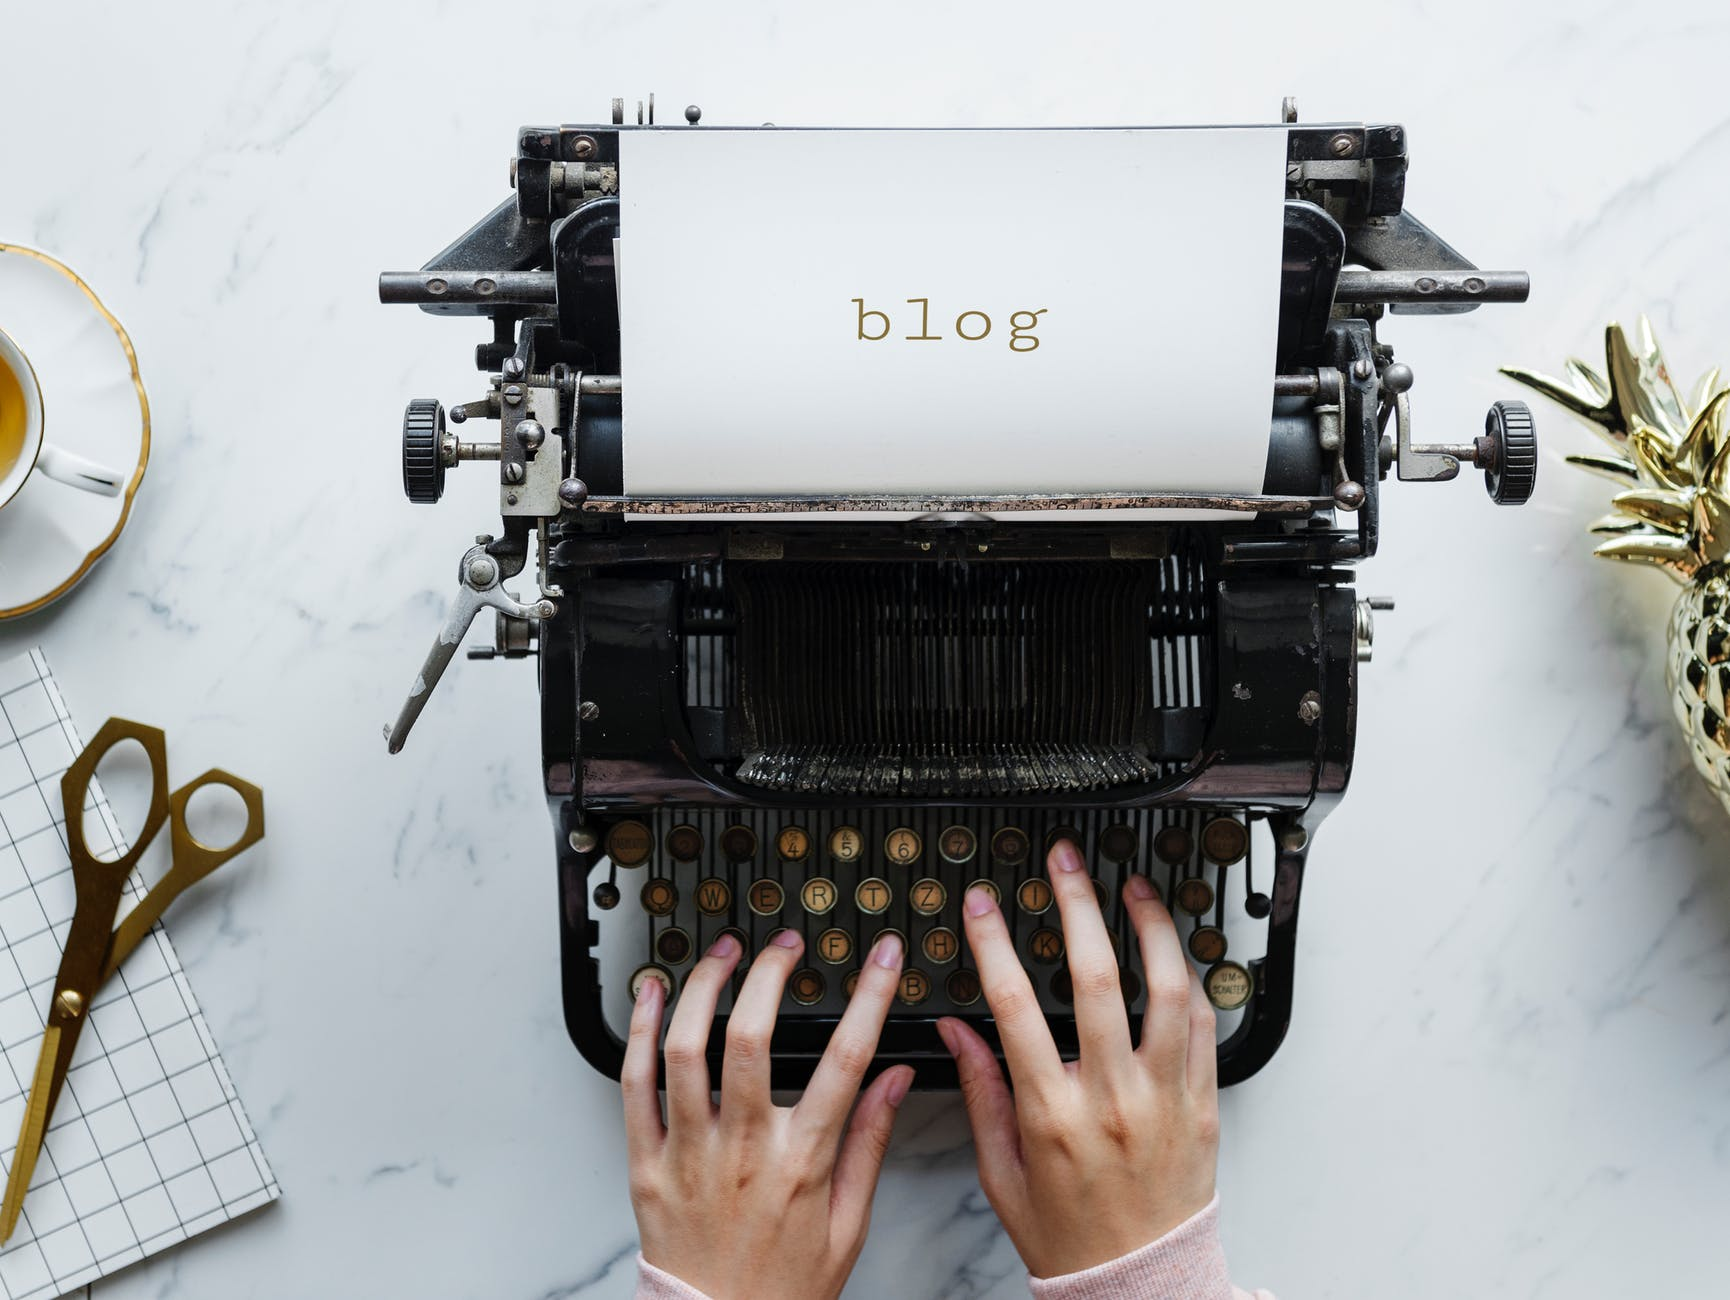 6 Lessons I've Learned In My First 6 Months Of Blogging